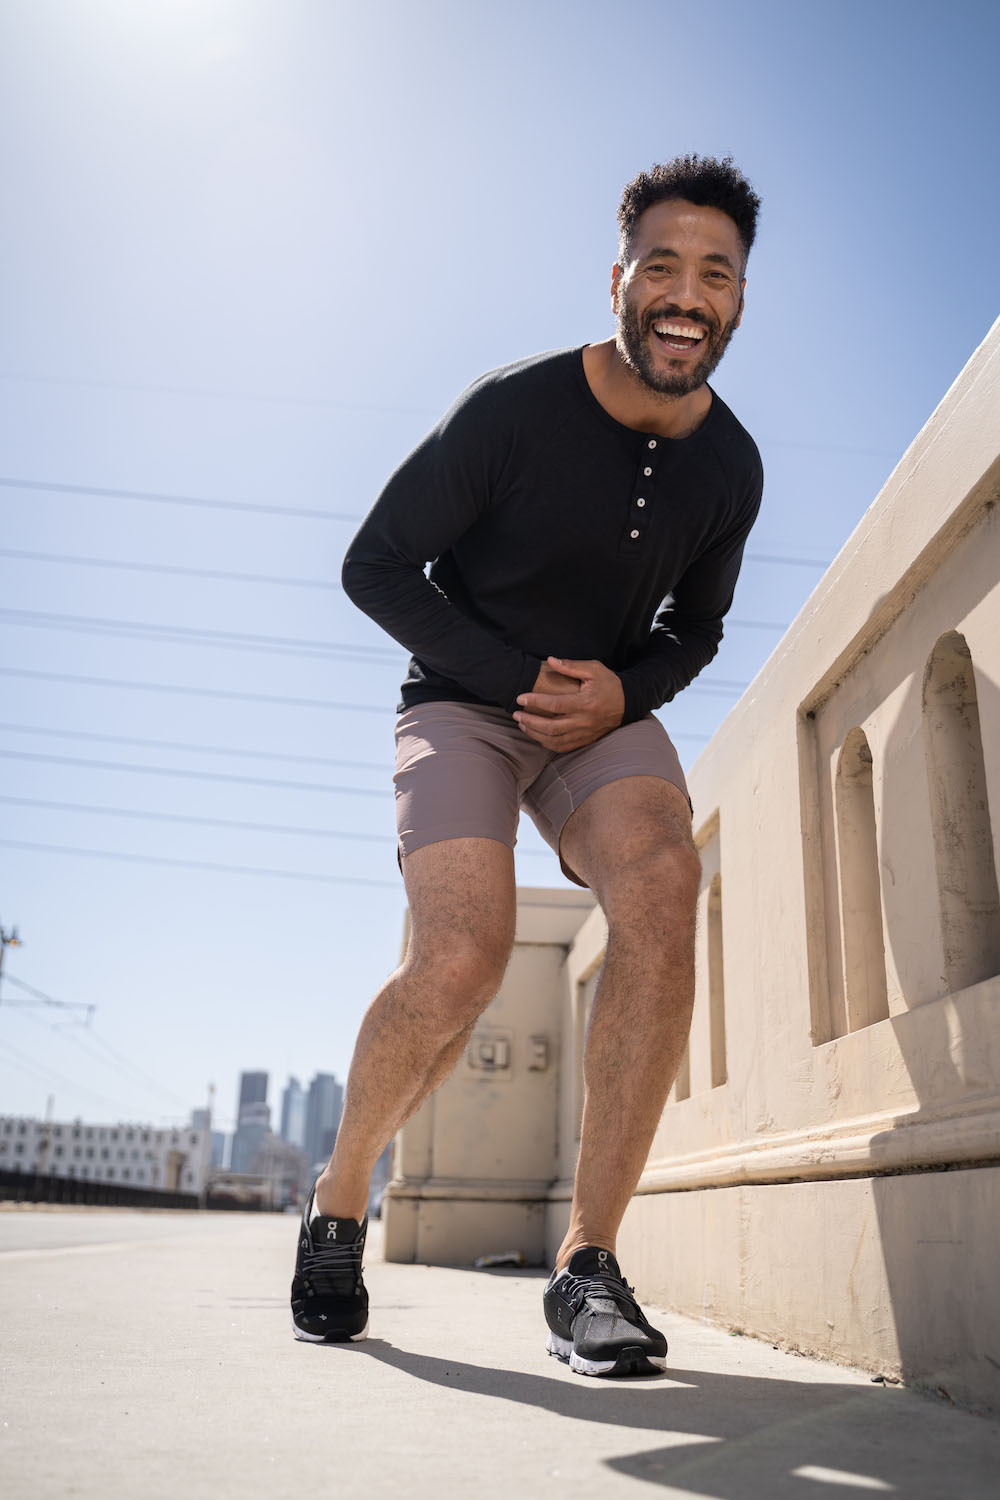 Lifestyle-On-Location-Model-Onmodel-Damion-Lloyd-Photography-Commercial-Product-Apparel-Clothing-Los-Angeles-Orange-County-male-man-GLYDER-sportswear-outdoor-city-urban